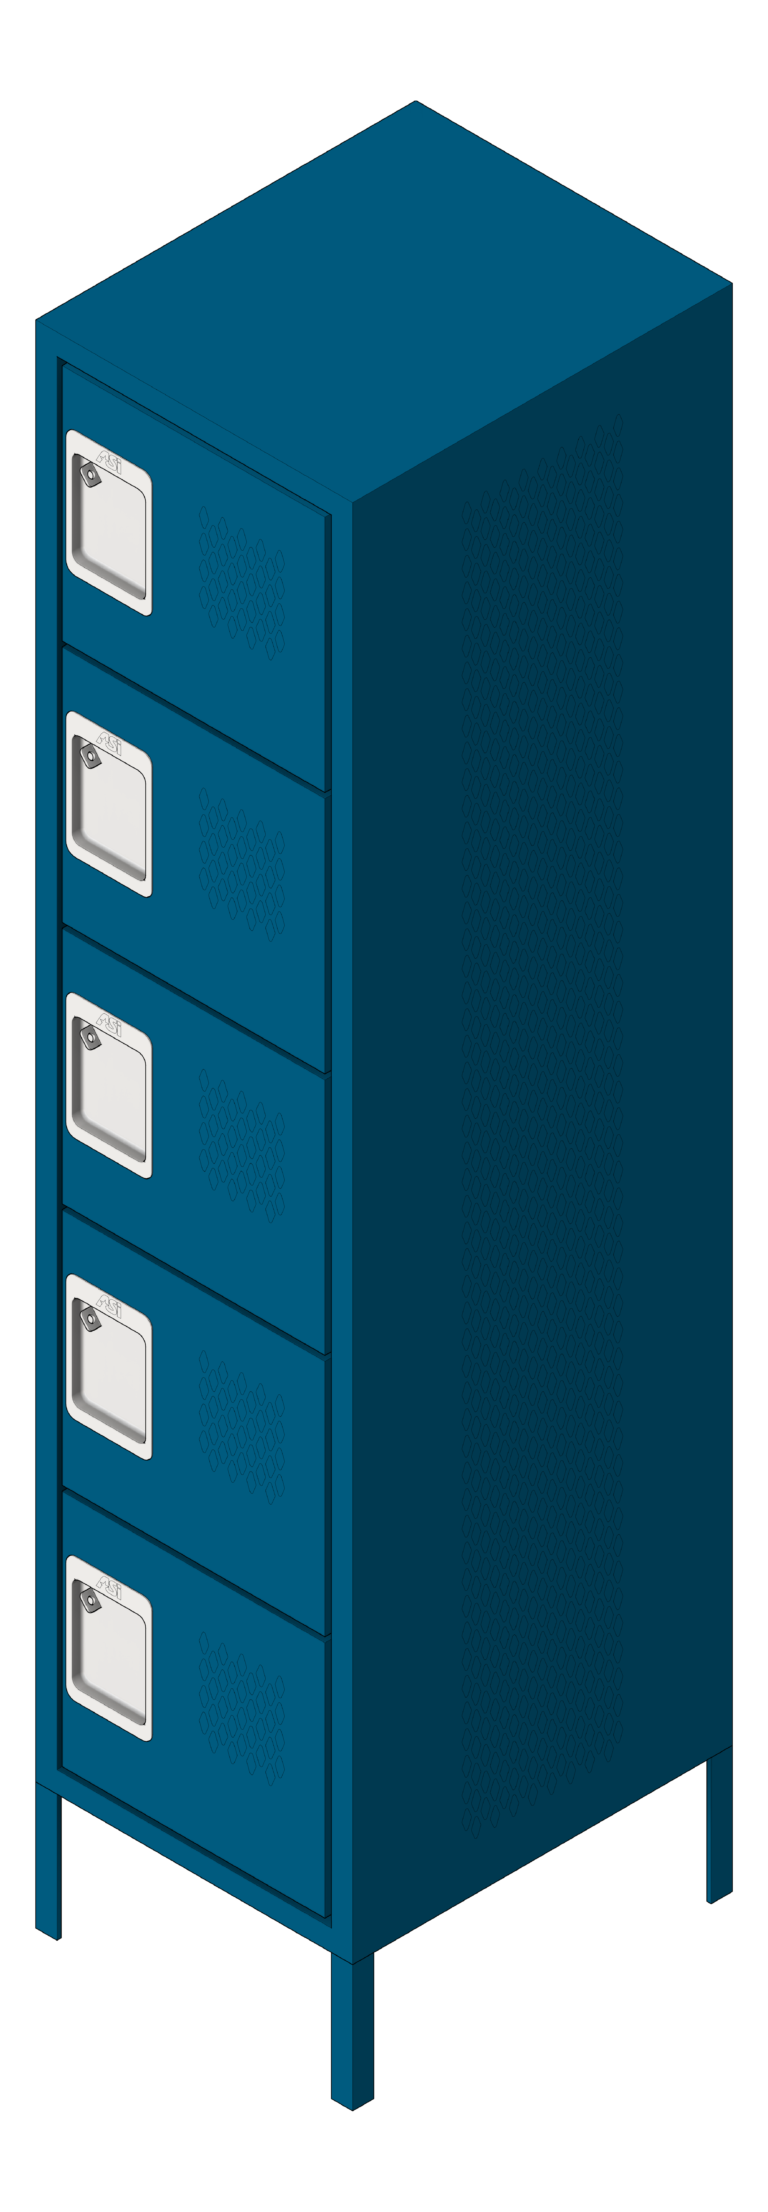 Locker_Metal_ASI_Competitor_FiveTier_3D Shaded